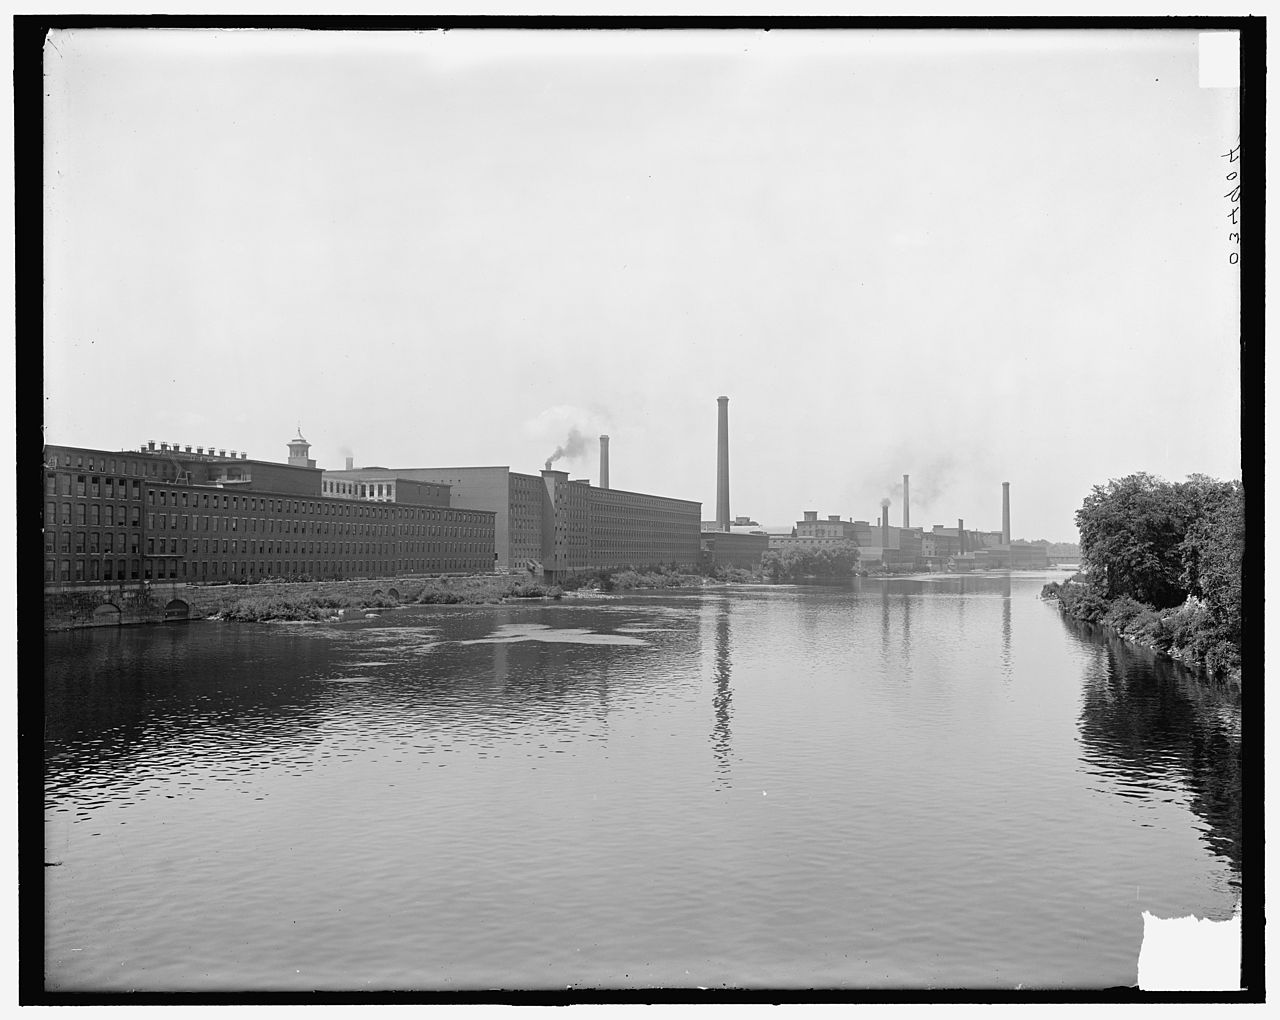 A view of the factories along the Merrimack River, around 1900.